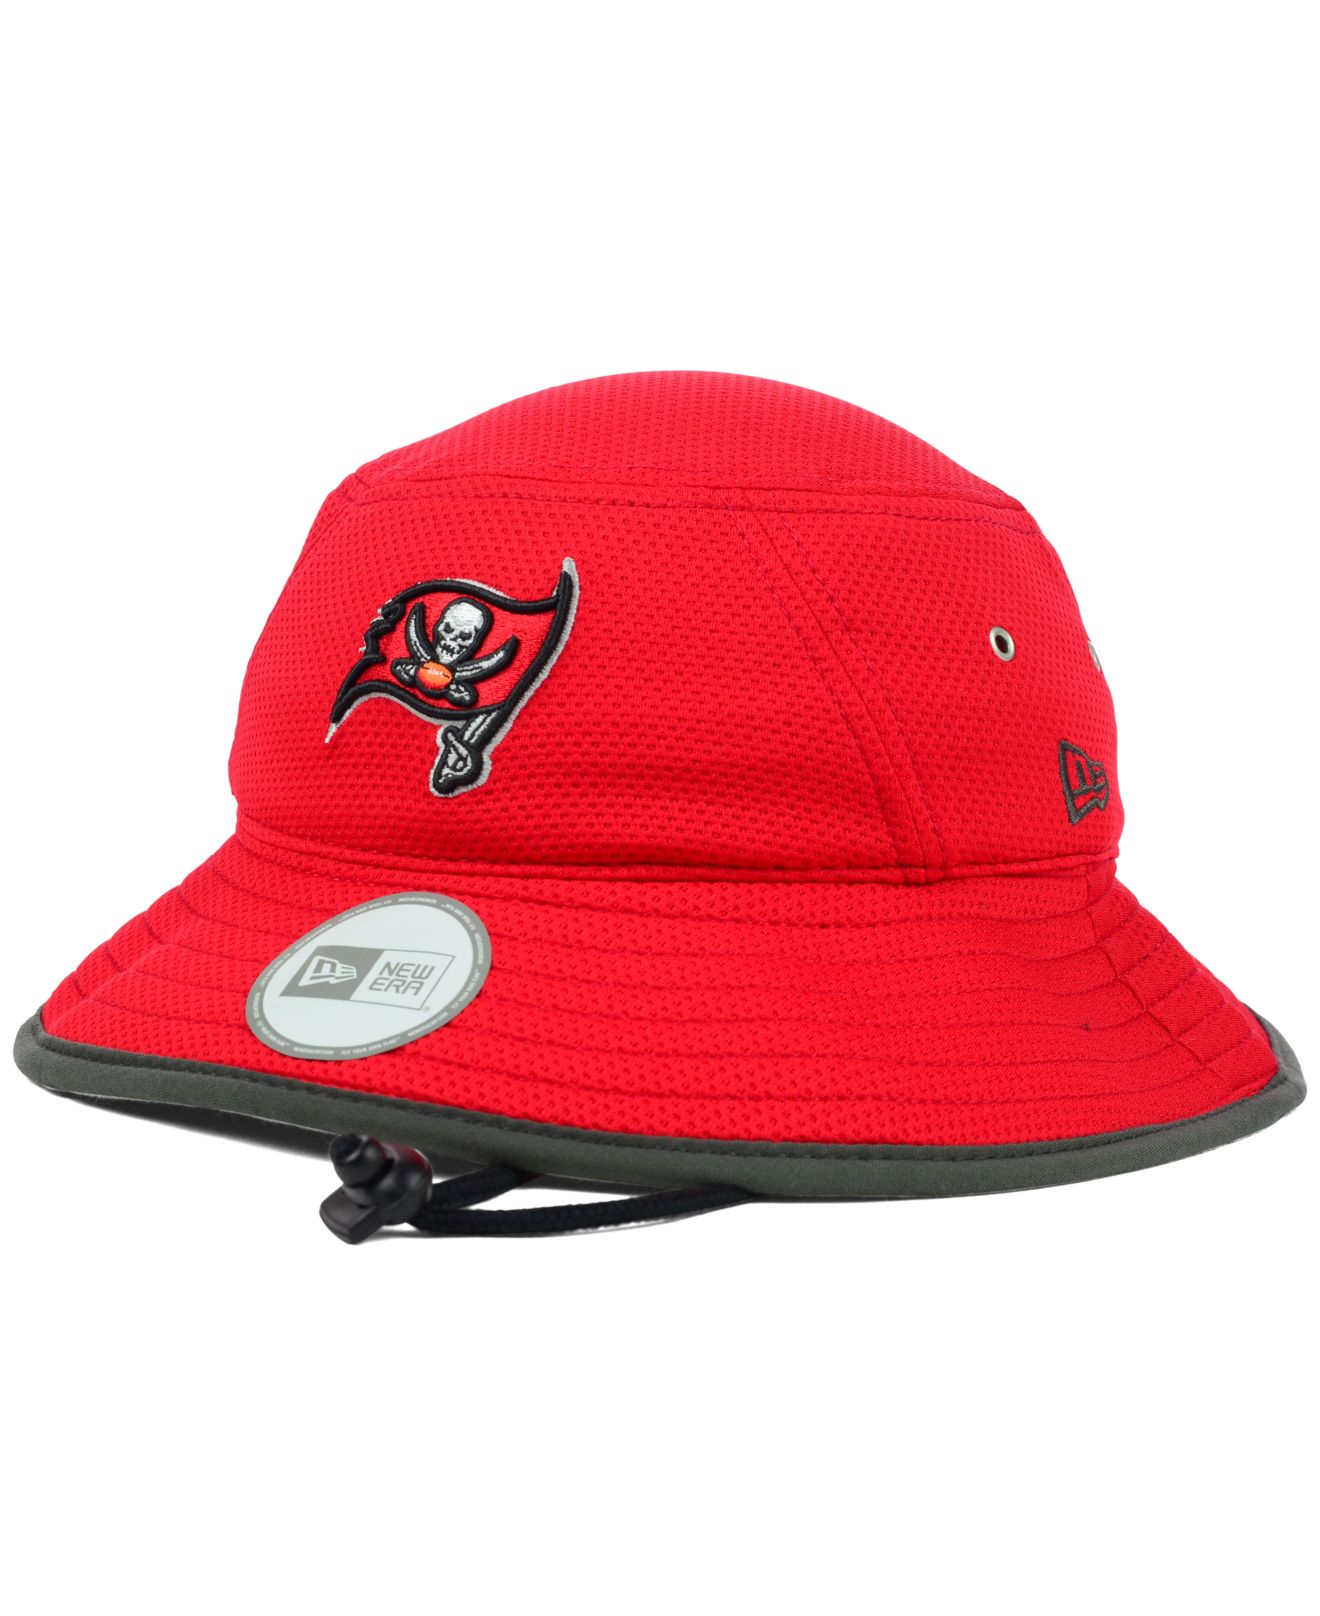 Lyst - KTZ Tampa Bay Buccaneers Tc Training Bucket Hat in Red for Men 3742b3d6f